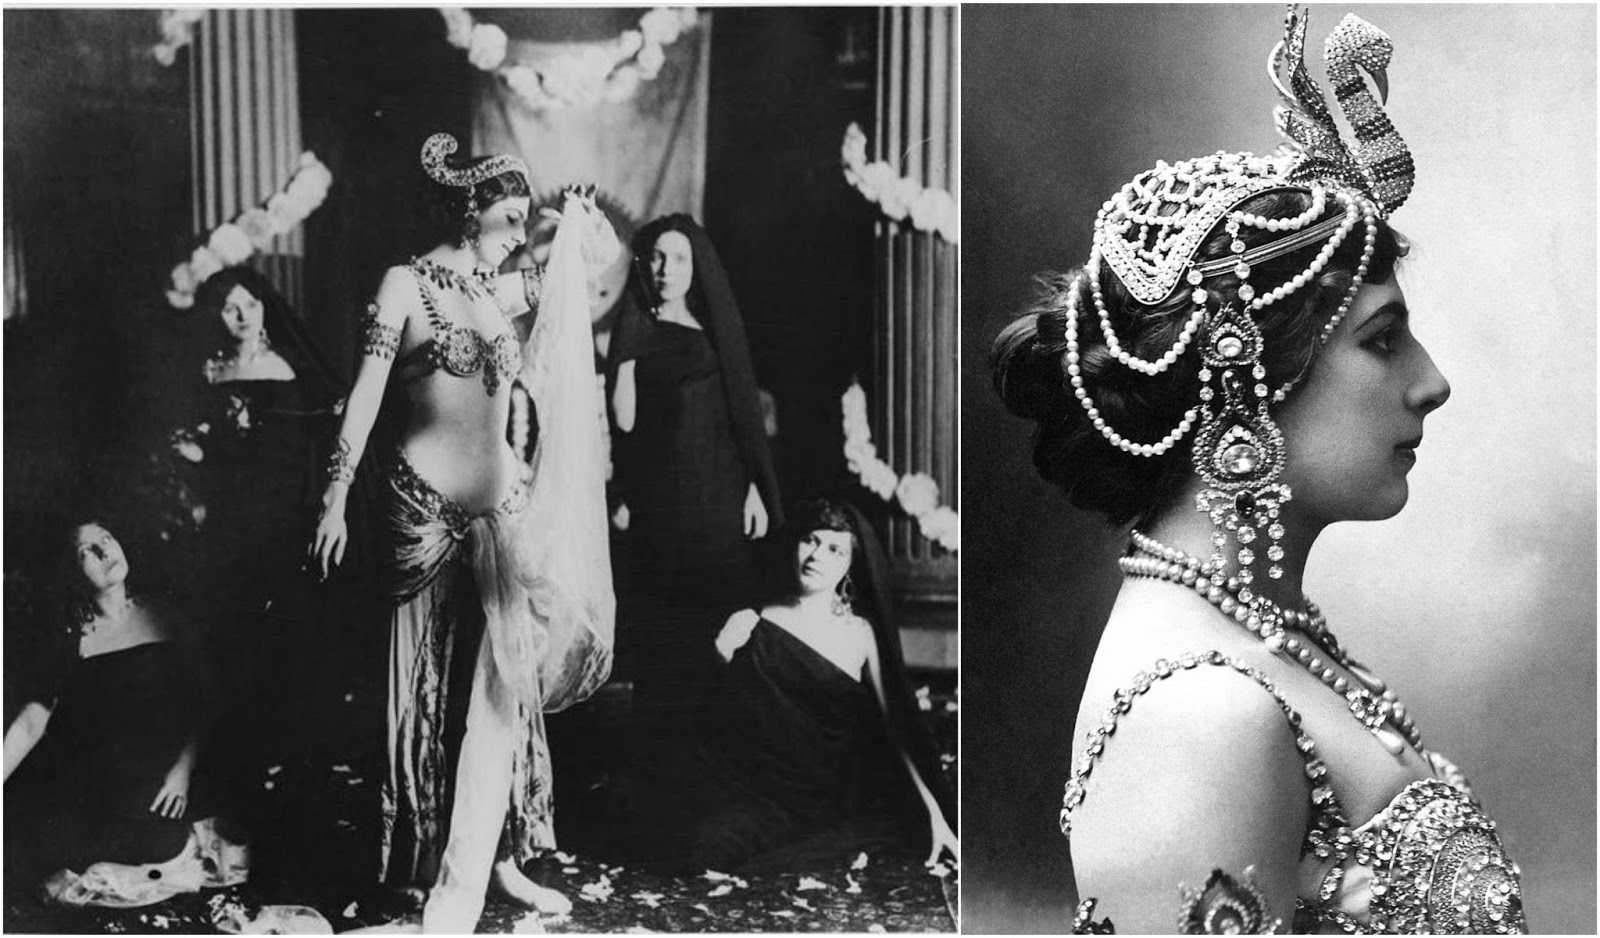 women spies mata hari Before a firing squad, mata hari refused a blindfold and blew kisses to her lawyer and the attending priest the command  feu  was given and the myth of the femme fatale spy was born.